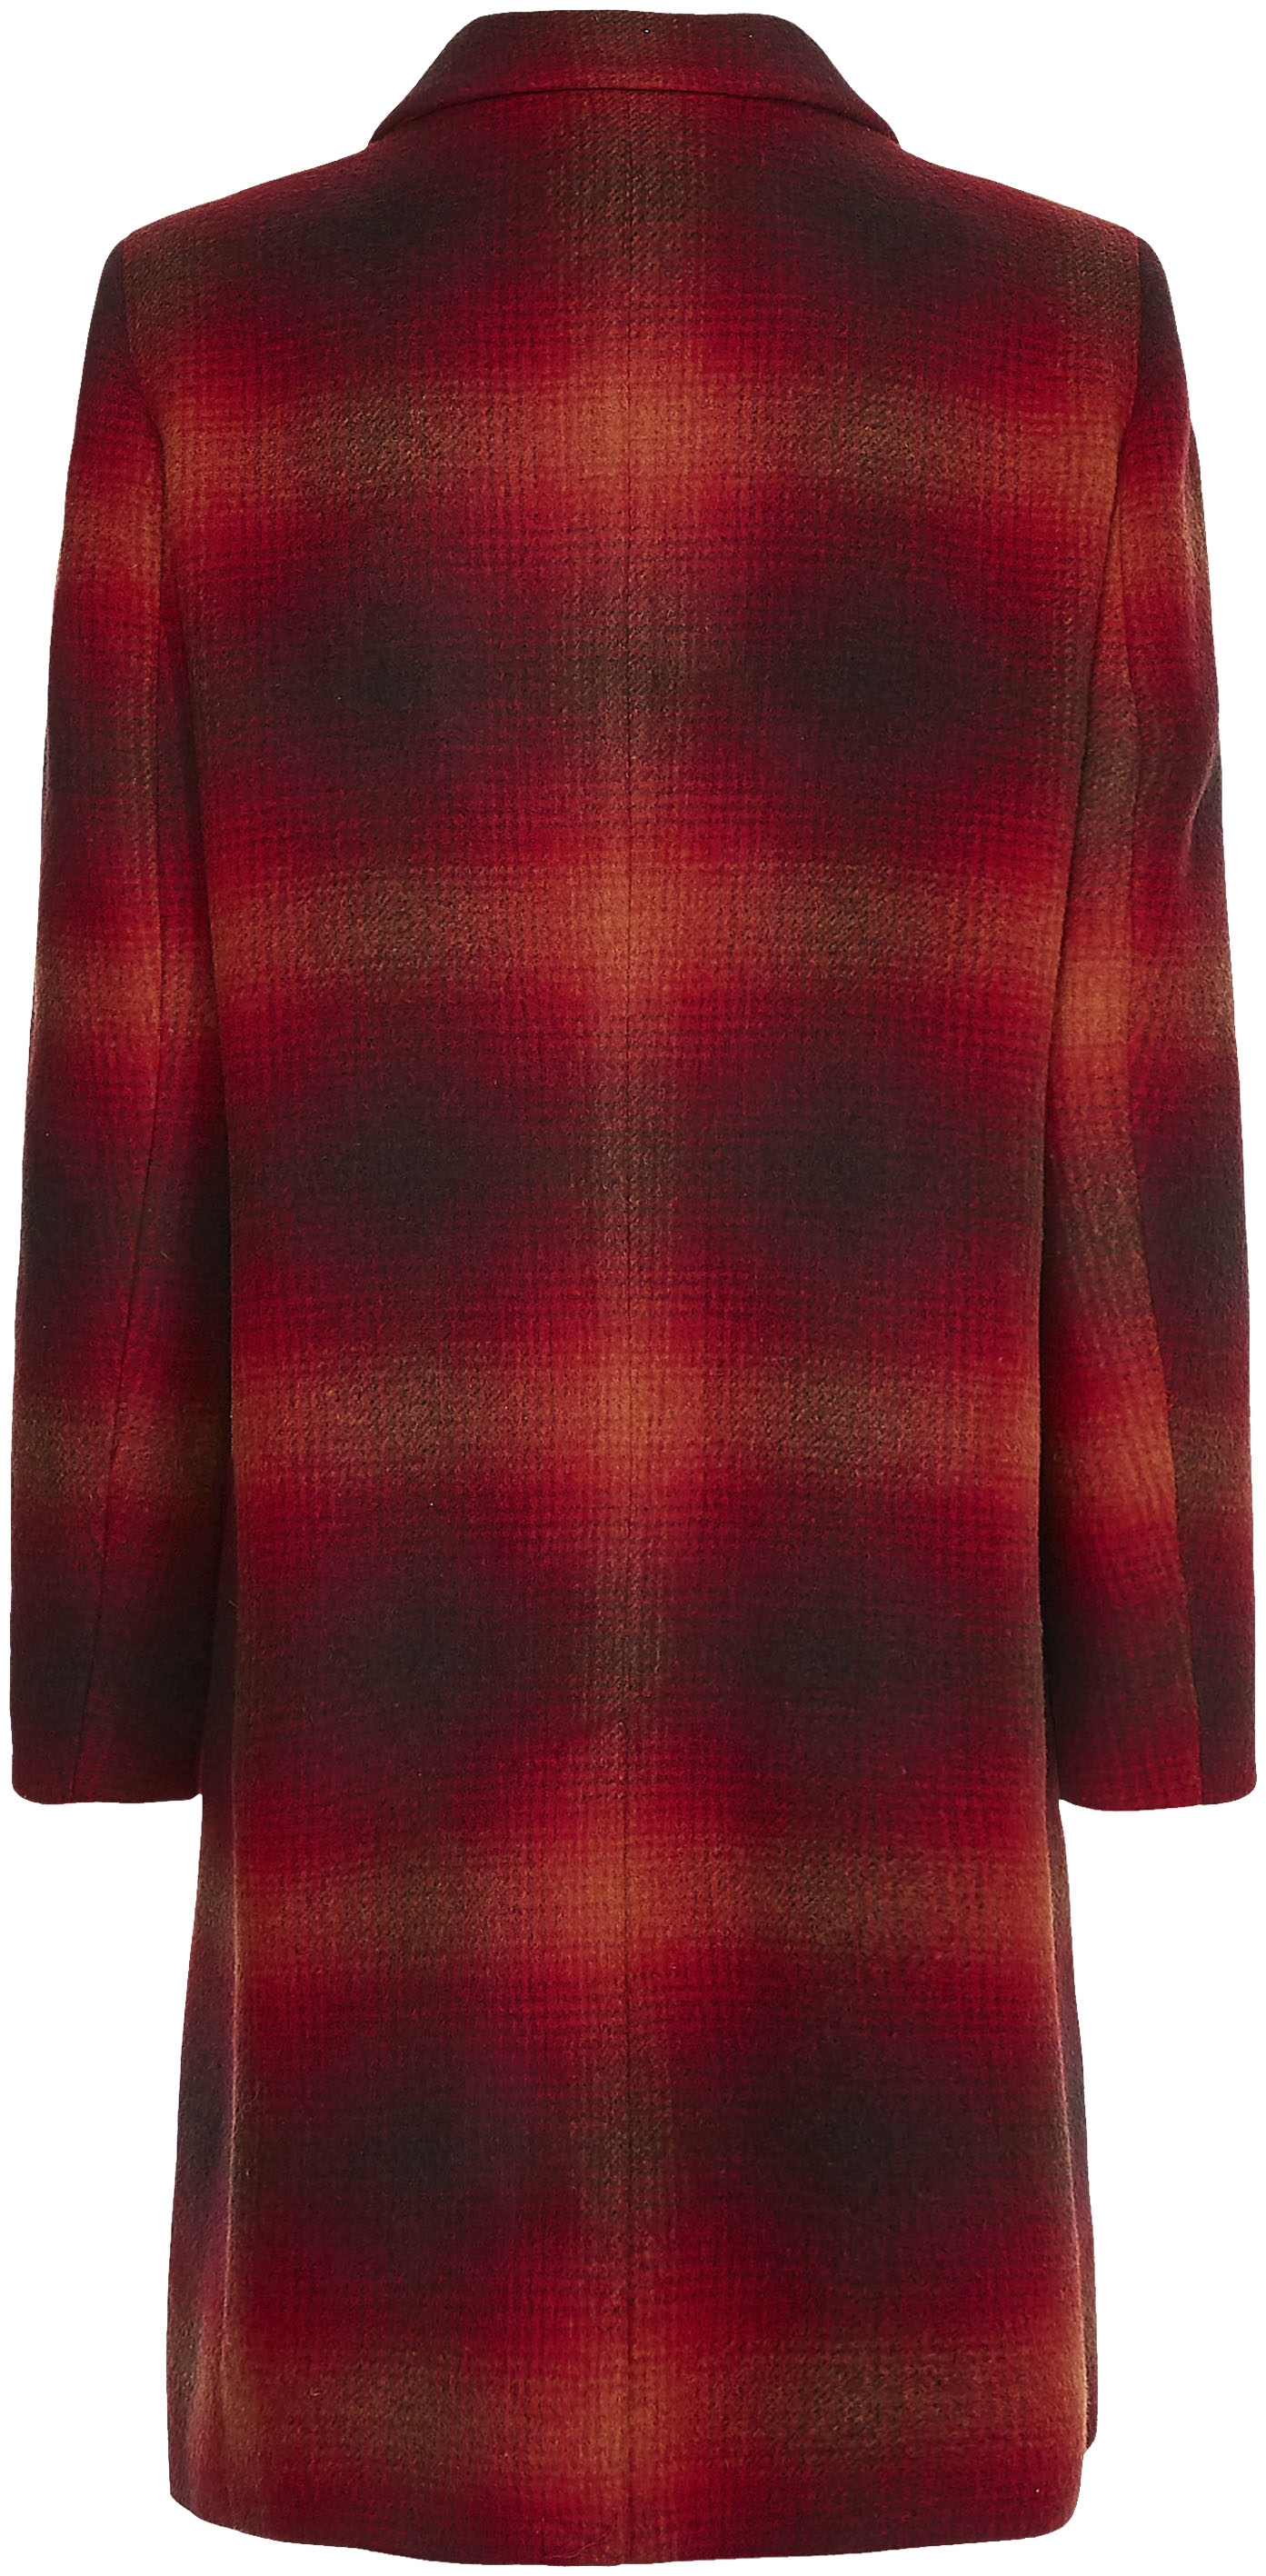 tommy hilfiger -  Wollmantel WOOL BLEND CHECK CLASSIC COAT, mit Karomuster